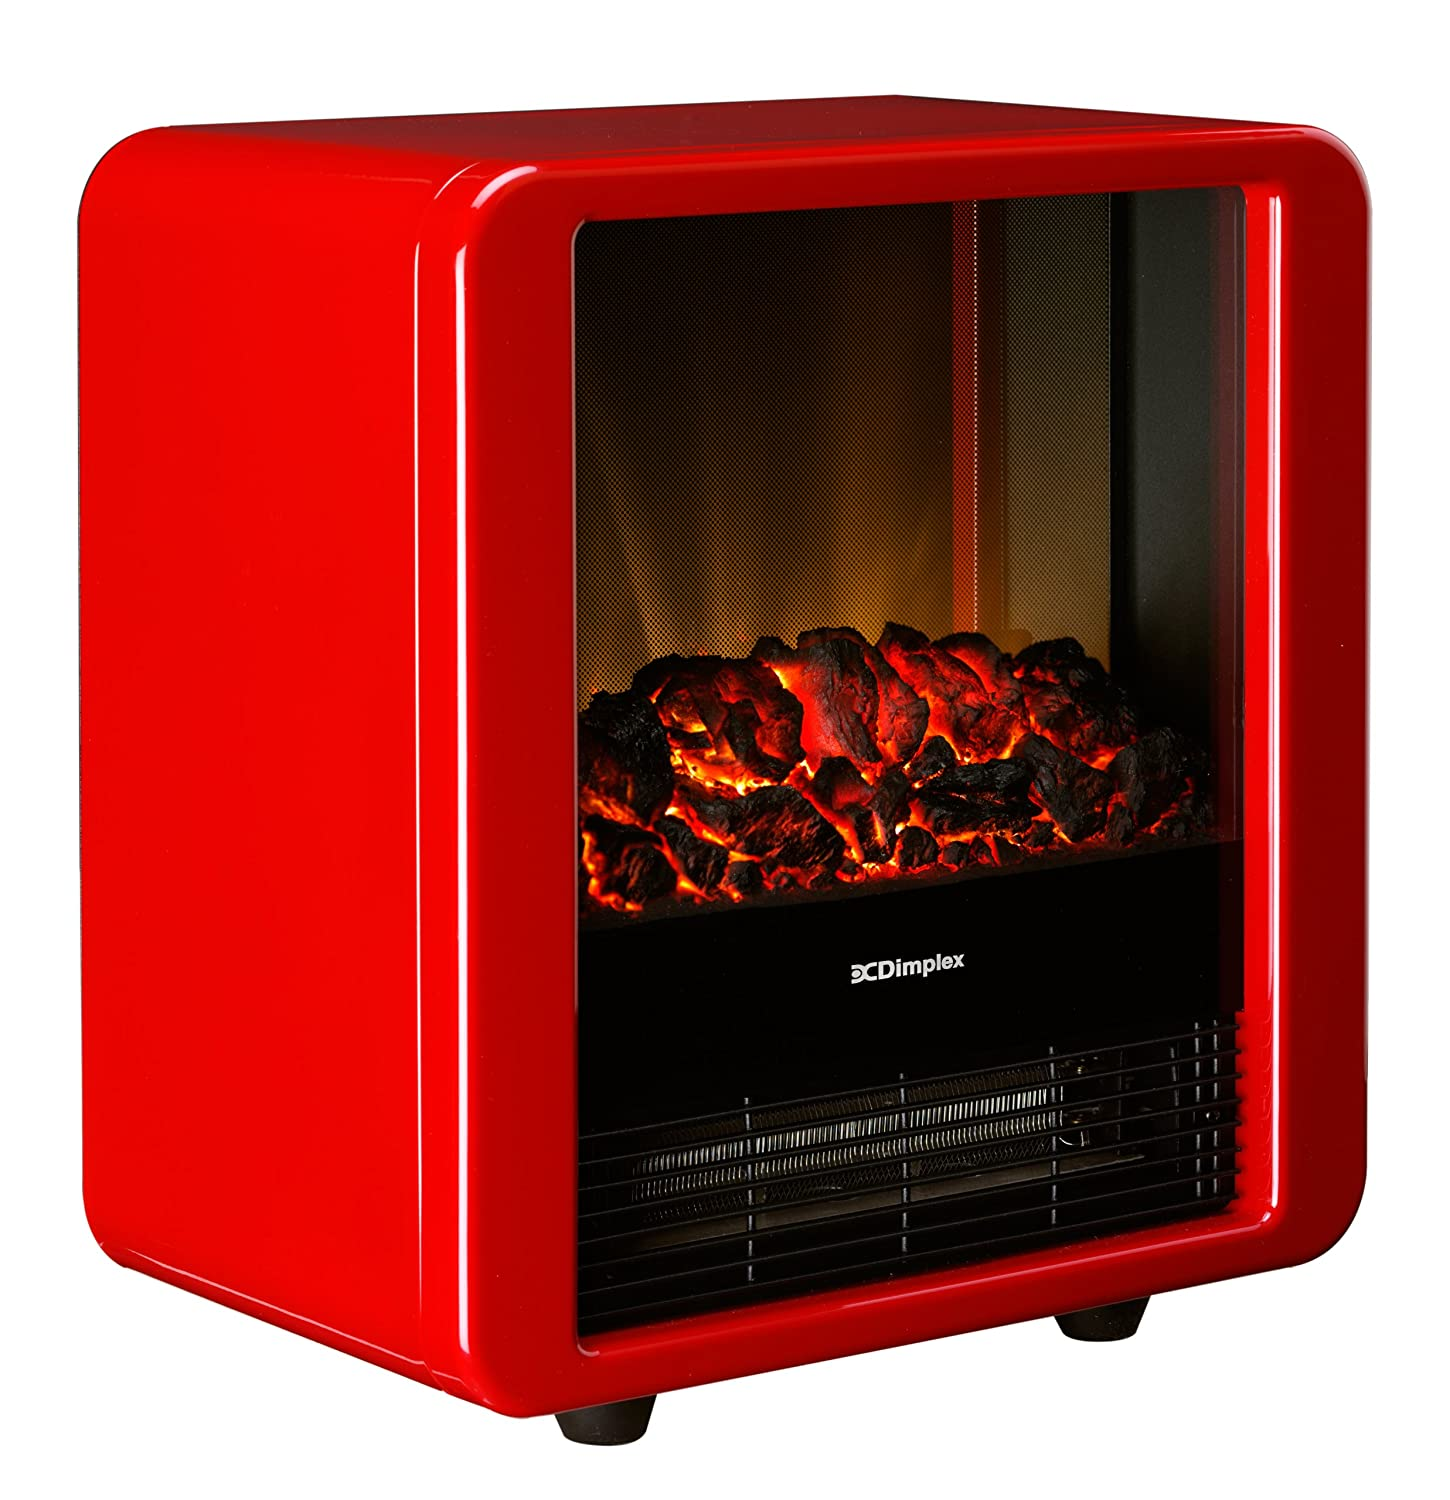 Dimplex 1.5 KW Optiflame Electric Micro Fire in High Gloss - Red Gdc Group Ltd MCF15R